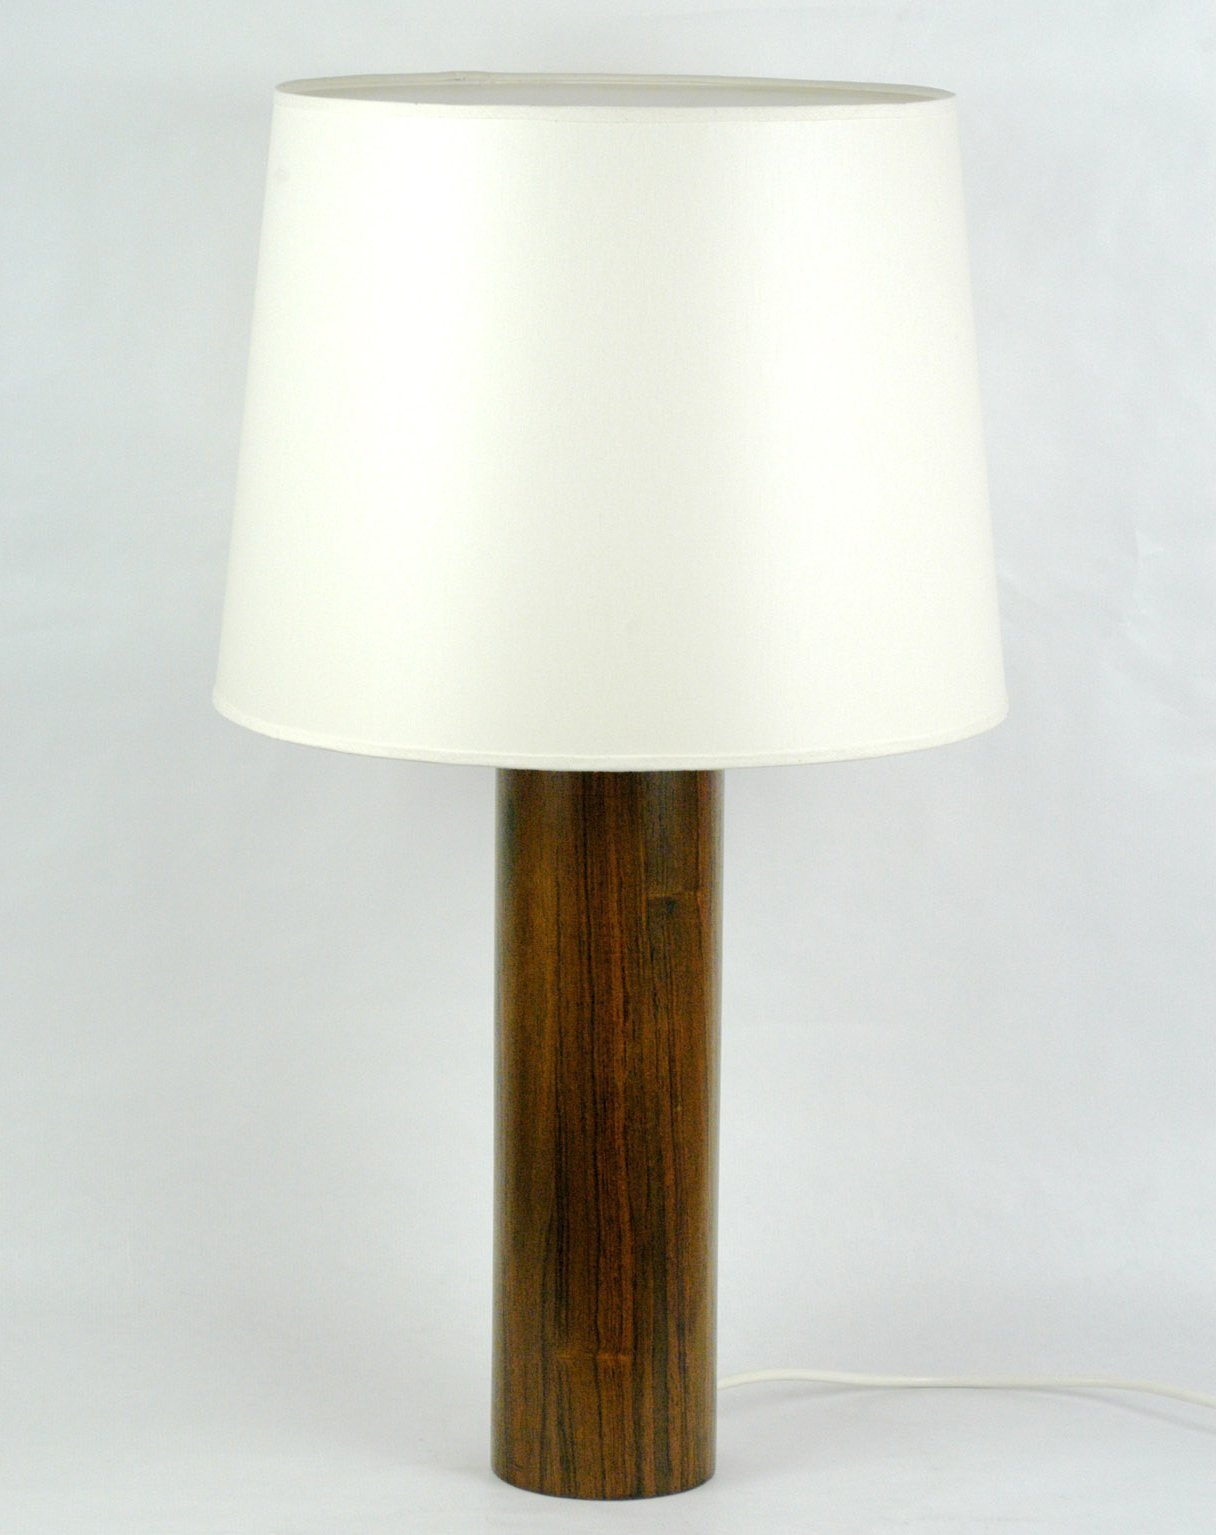 Scandinavian modern rosewood table lamp by uno sten scandinavian modern rosewood table lamp by uno sten kristiansson arubaitofo Images